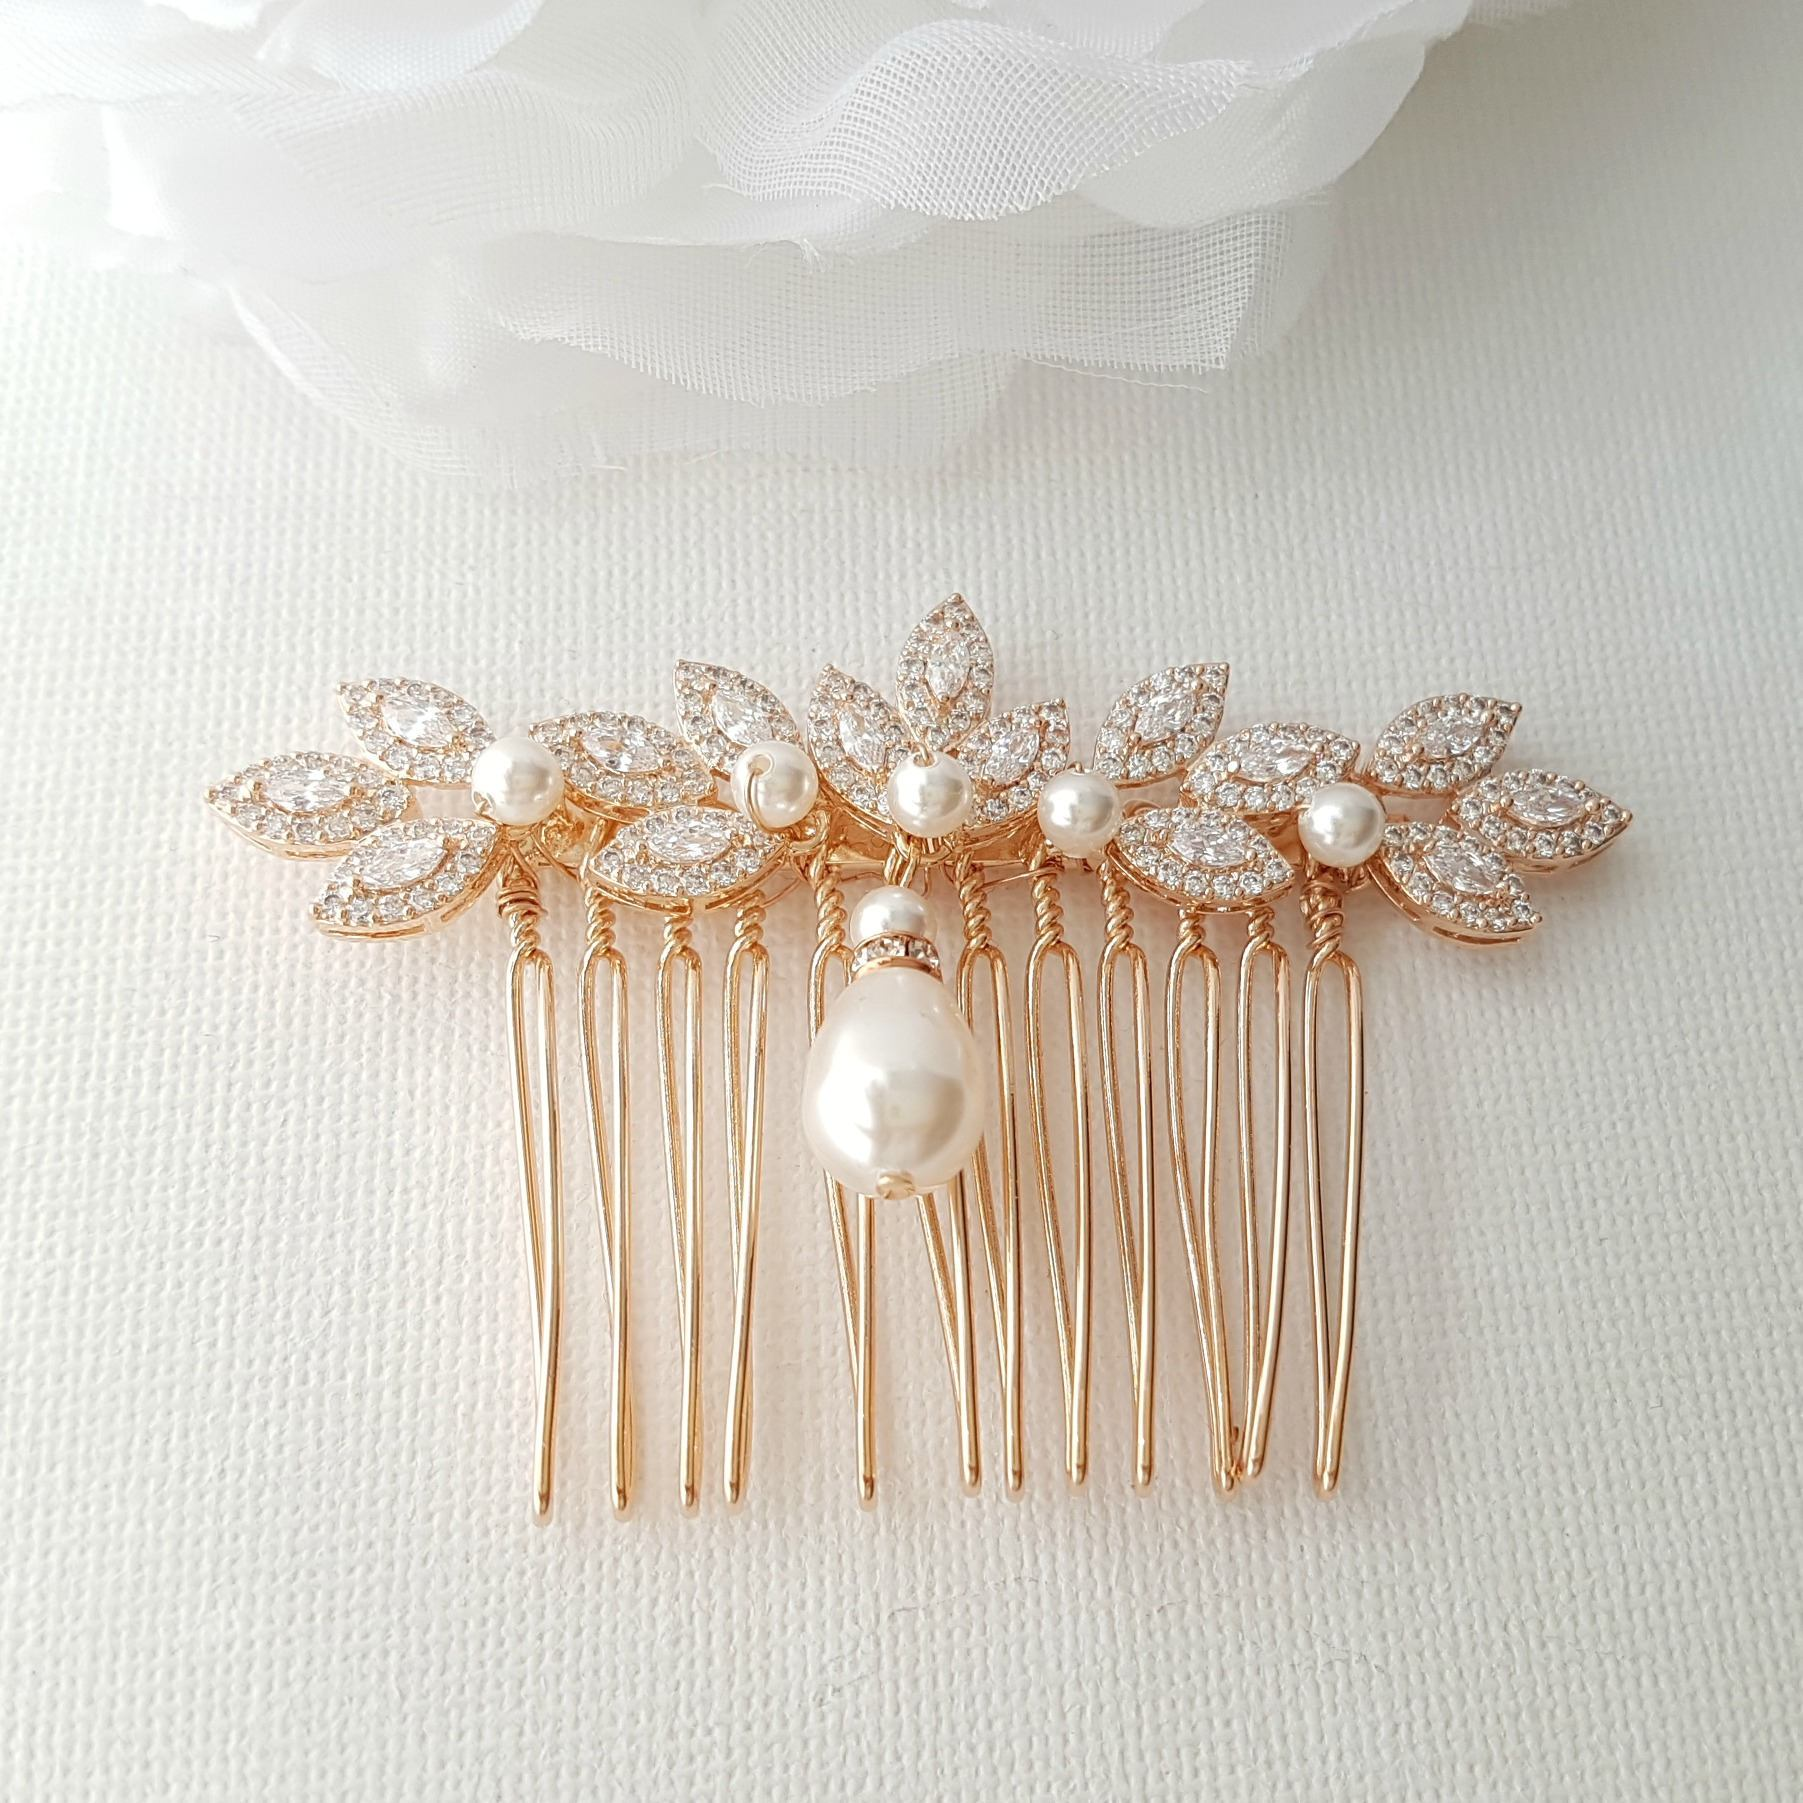 Rose Gold Hair Comb, Crystal Leaf Hair Comb, Wedding Hair Comb, Rose Gold Headpiece, Pearl Drop, Crystal Hair Comb, Gold Hair Comb, Abby - PoetryDesigns